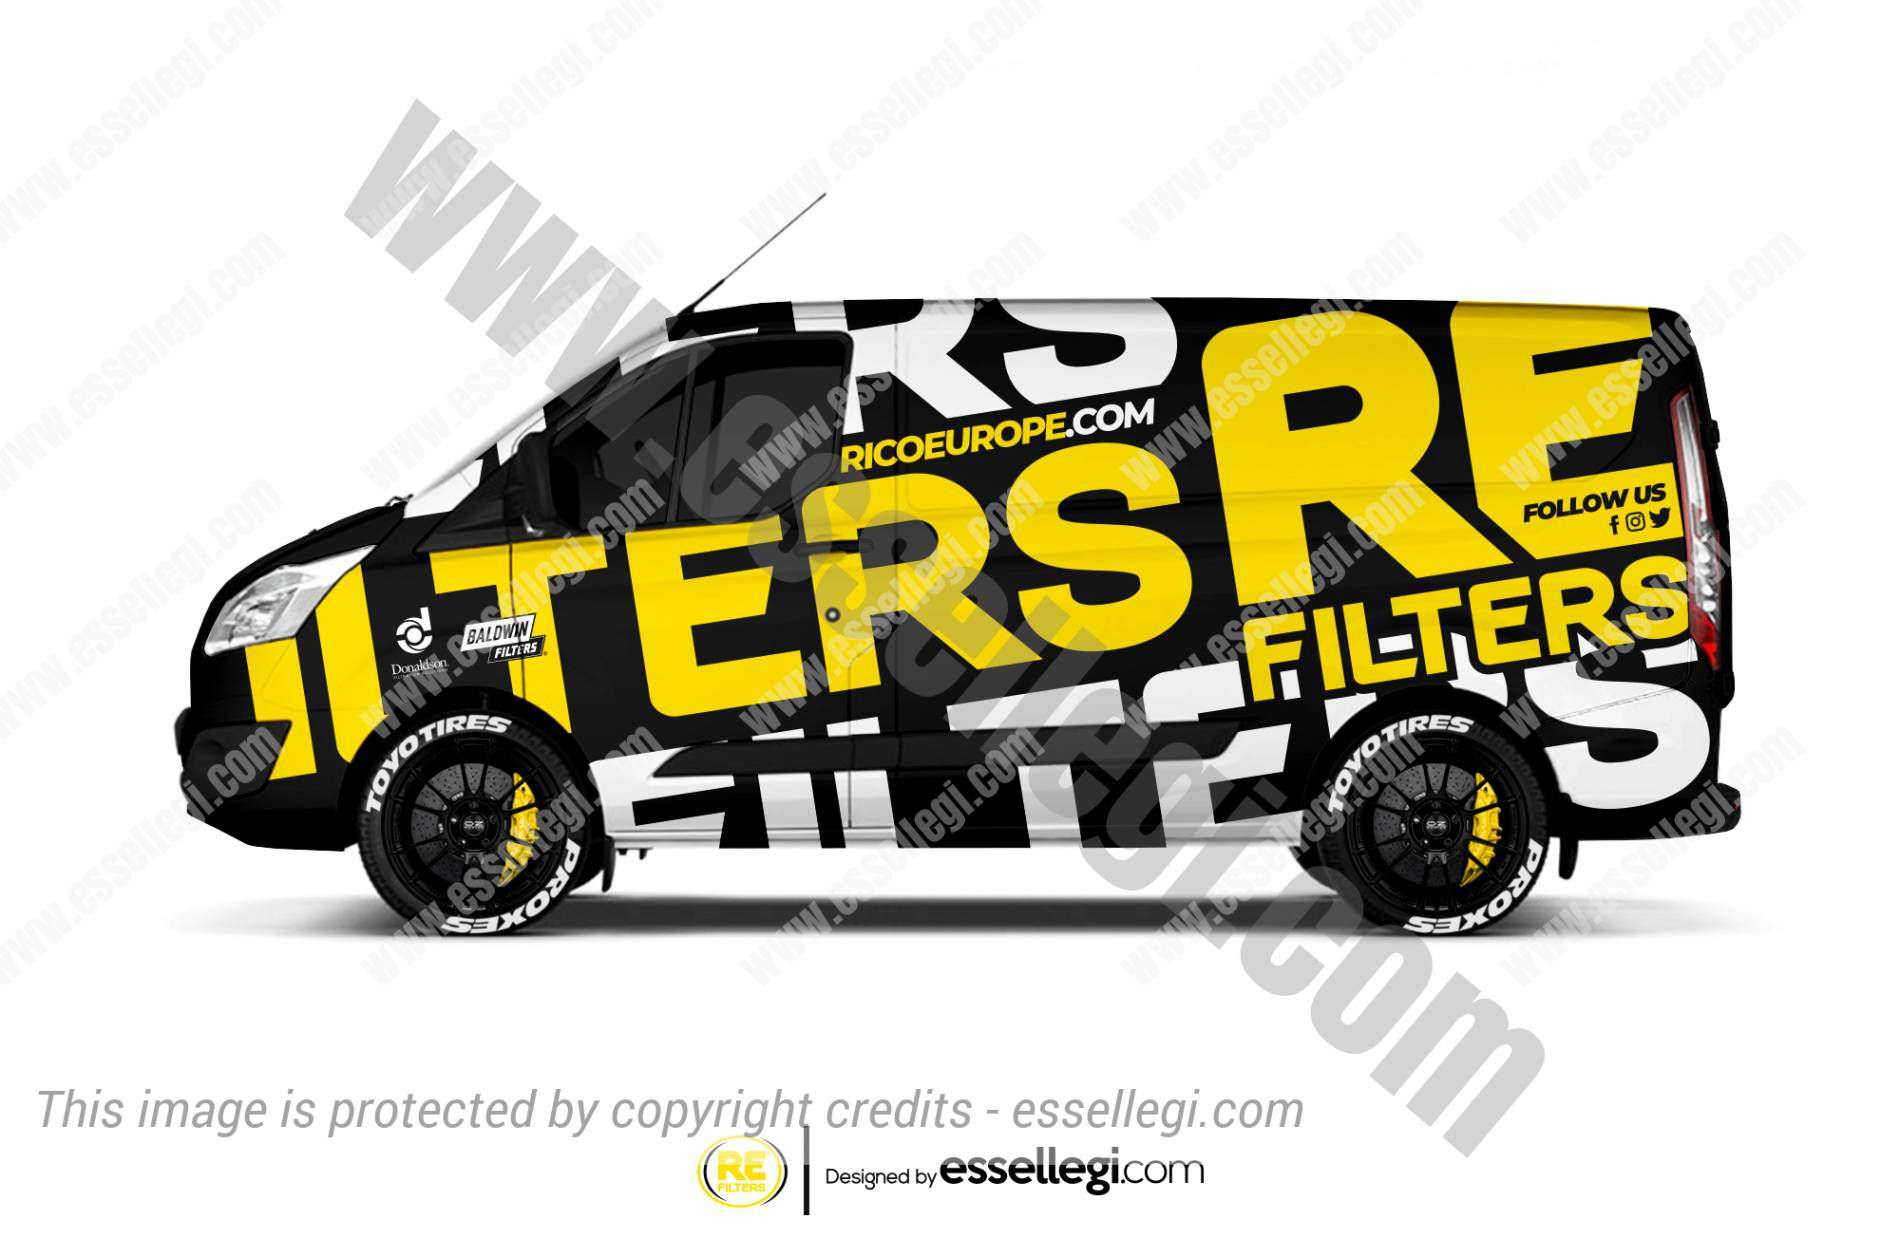 RICO EUROPE FILTERS | VAN WRAP DESIGN 🇬🇧